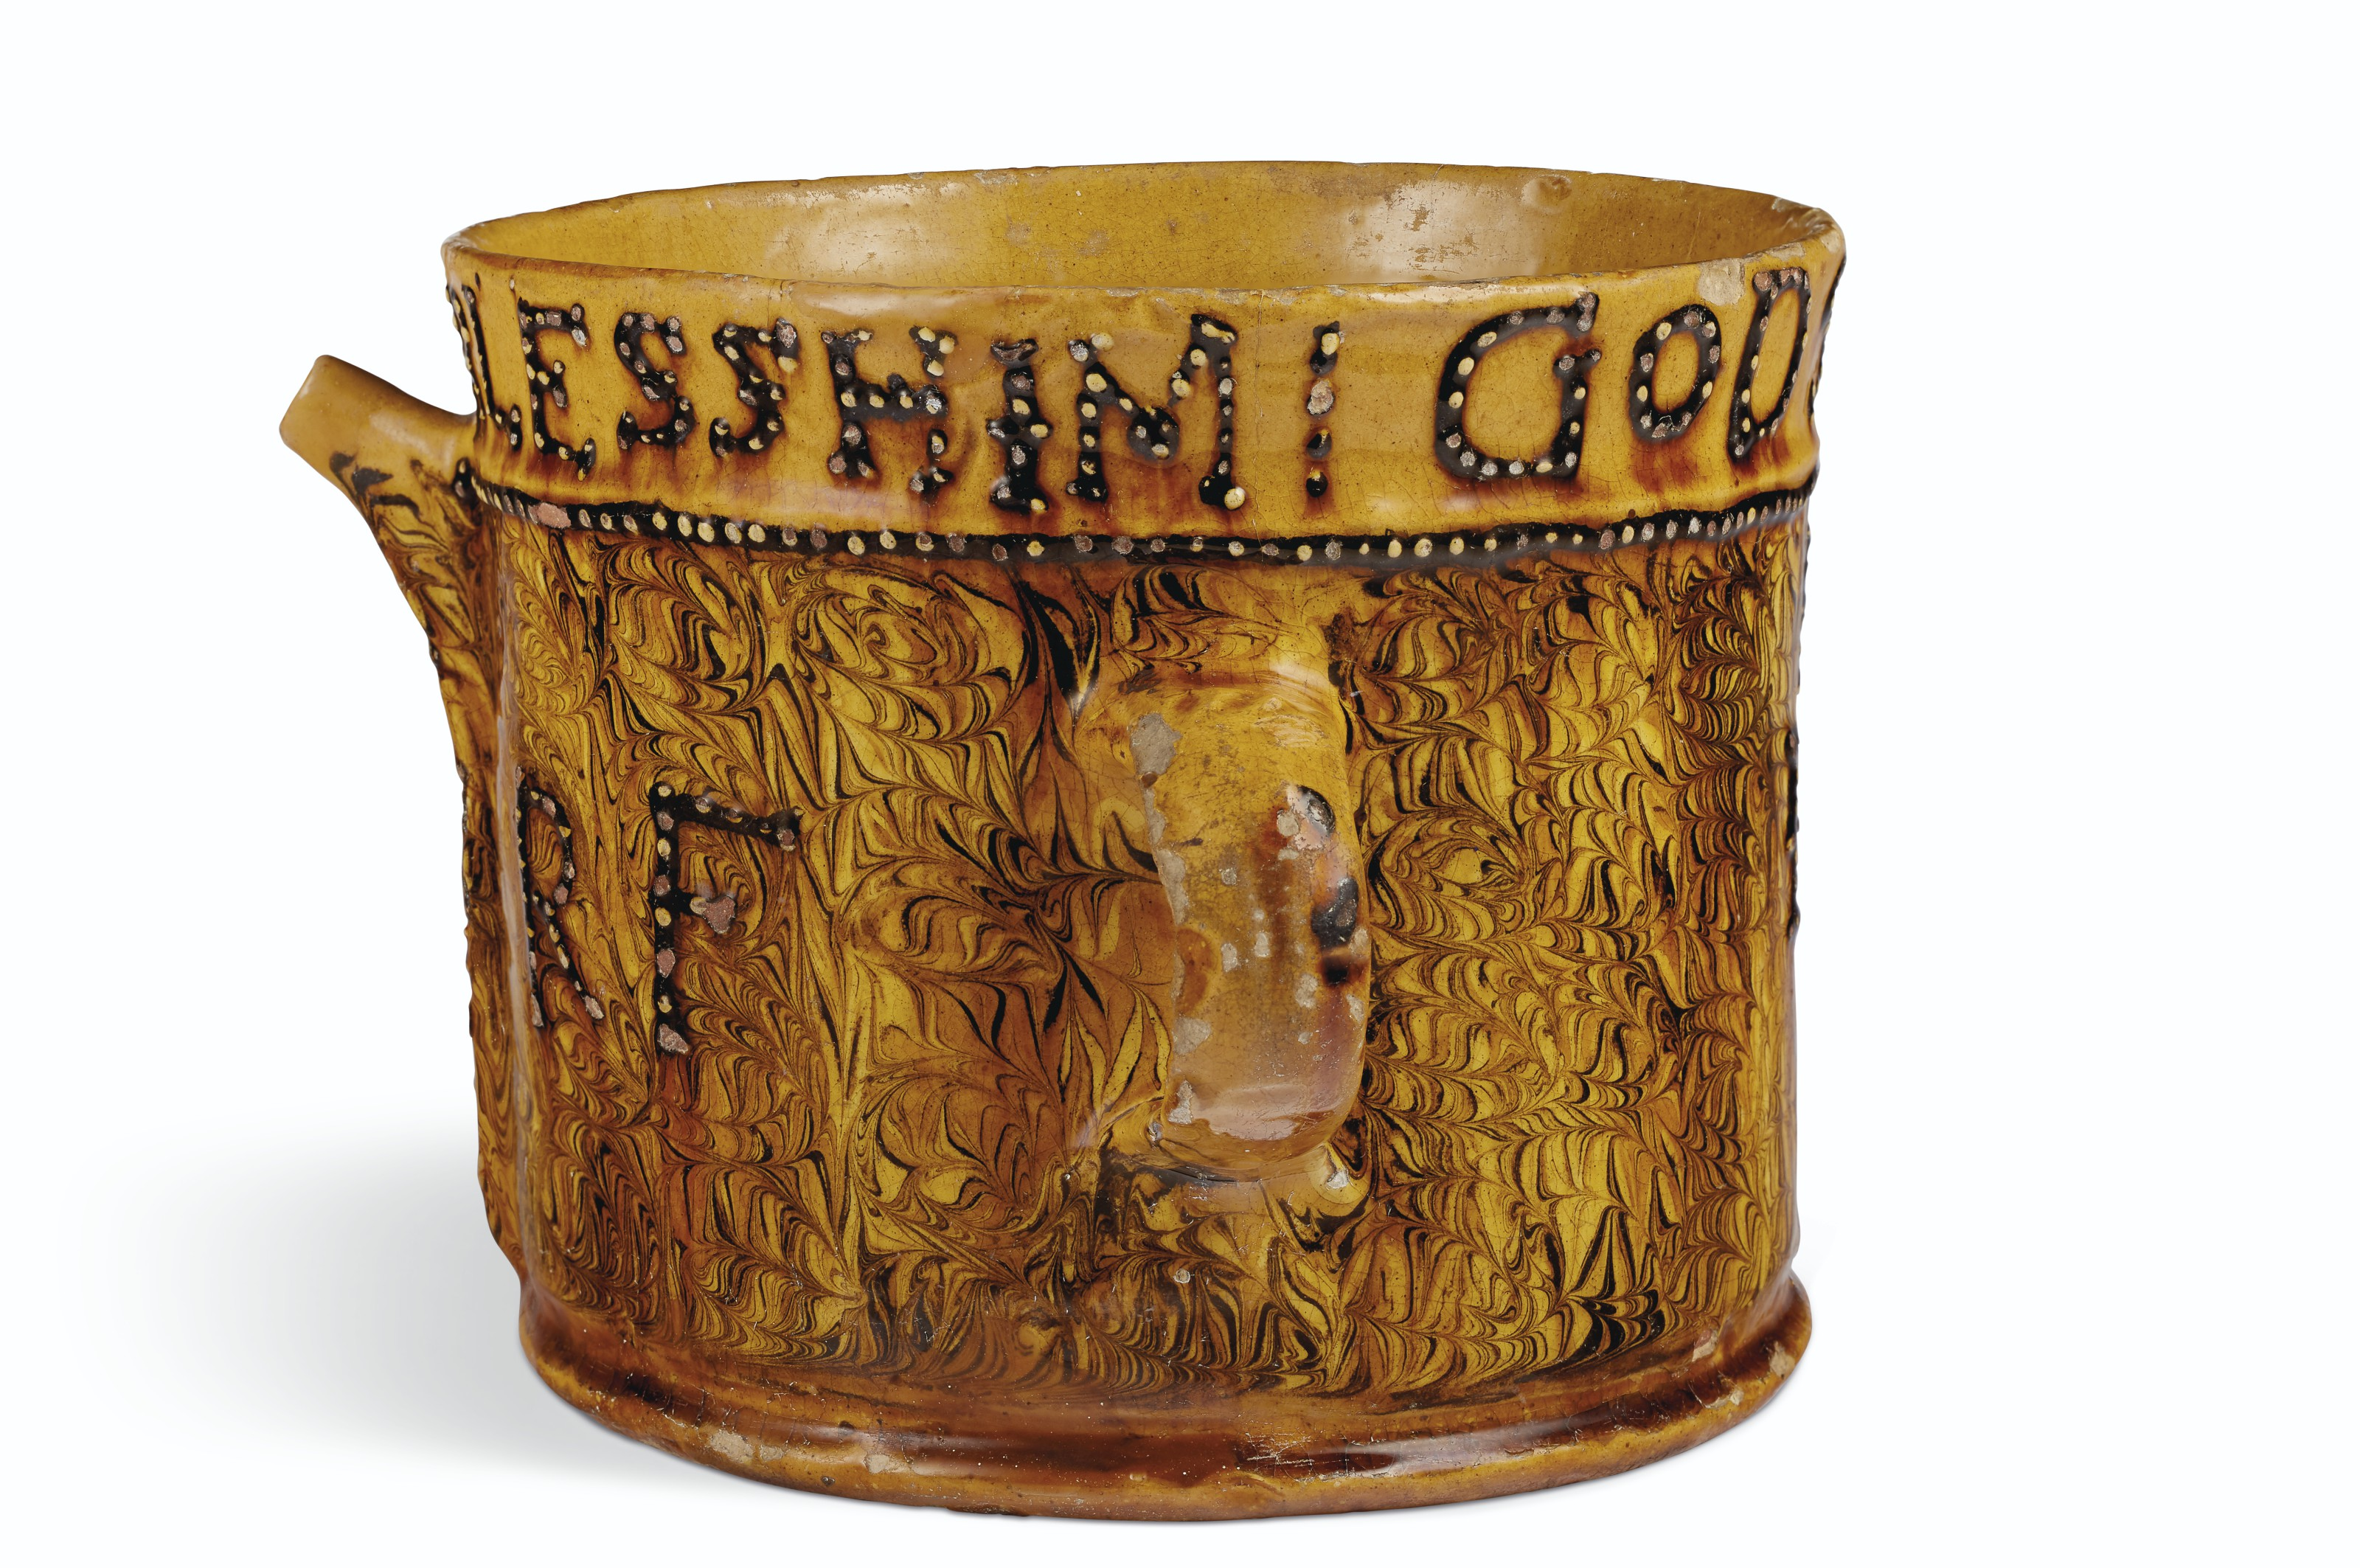 A STAFFORDSHIRE SLIPWARE DATED AND INITIALED POSSET-POT